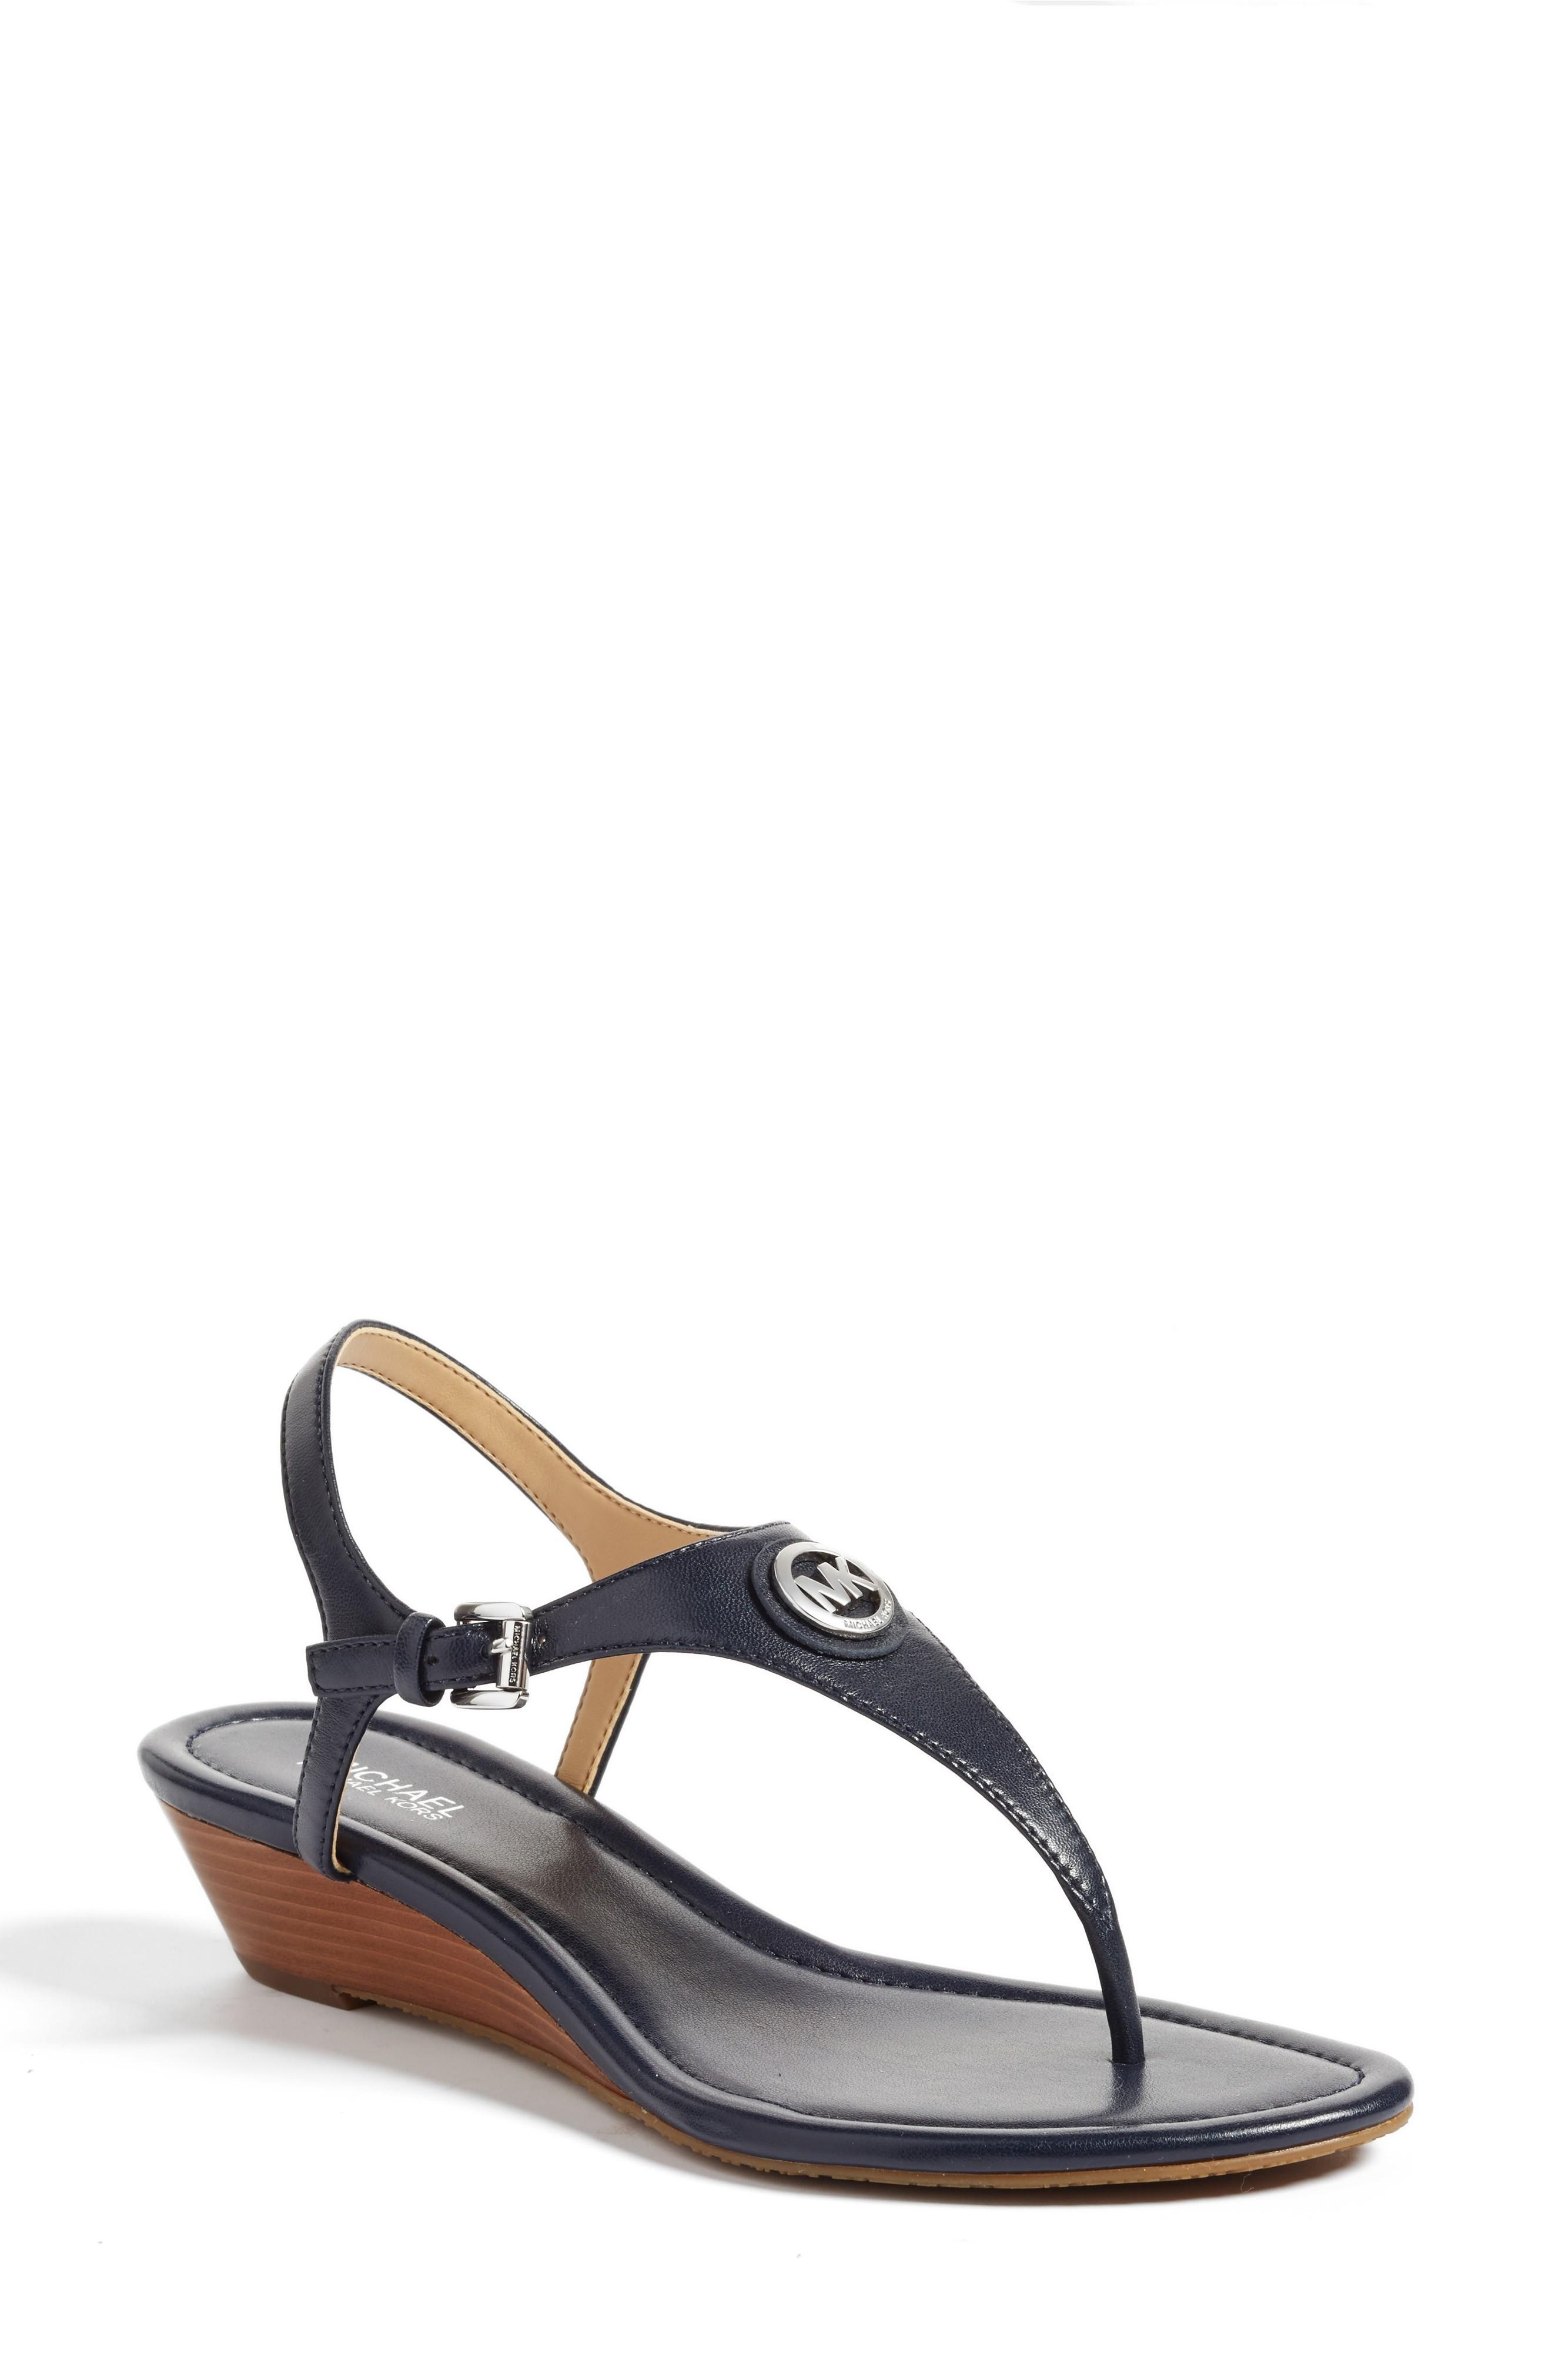 60f013b7f25f Circular logo hardware marks the T-strap of a classic and chic leather  sandal set on a slender stacked wedge. Style Name  Michael Michael Kors   Ramona  ...